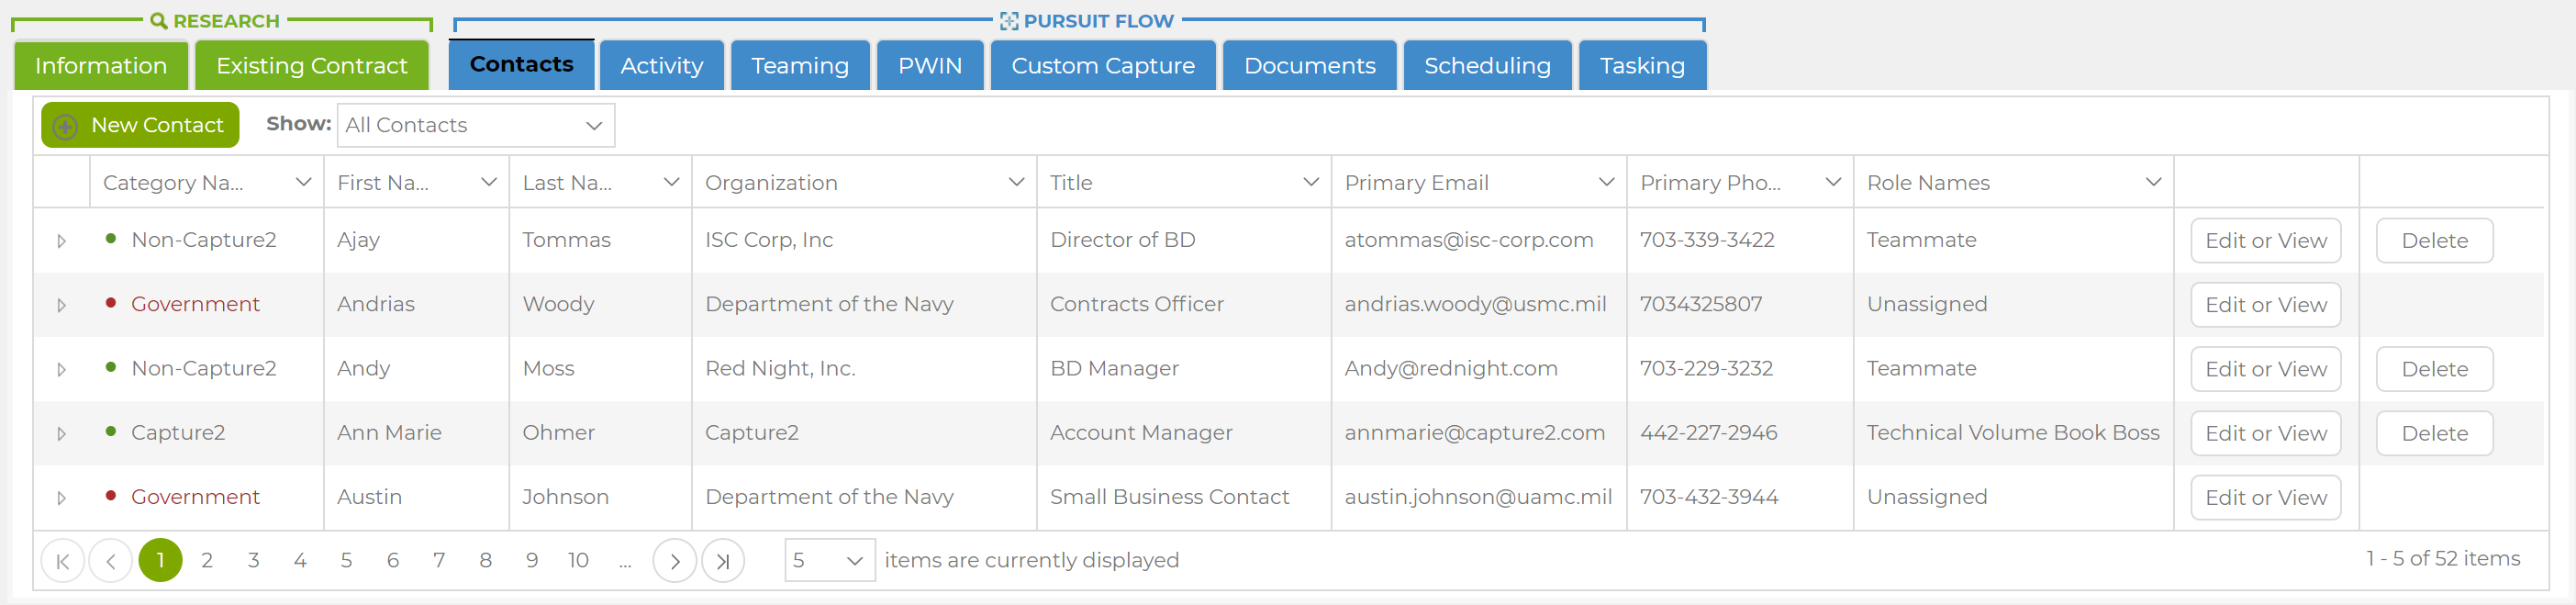 Manage Government, Business Development, Capture, Proposal and Teammate Contacts